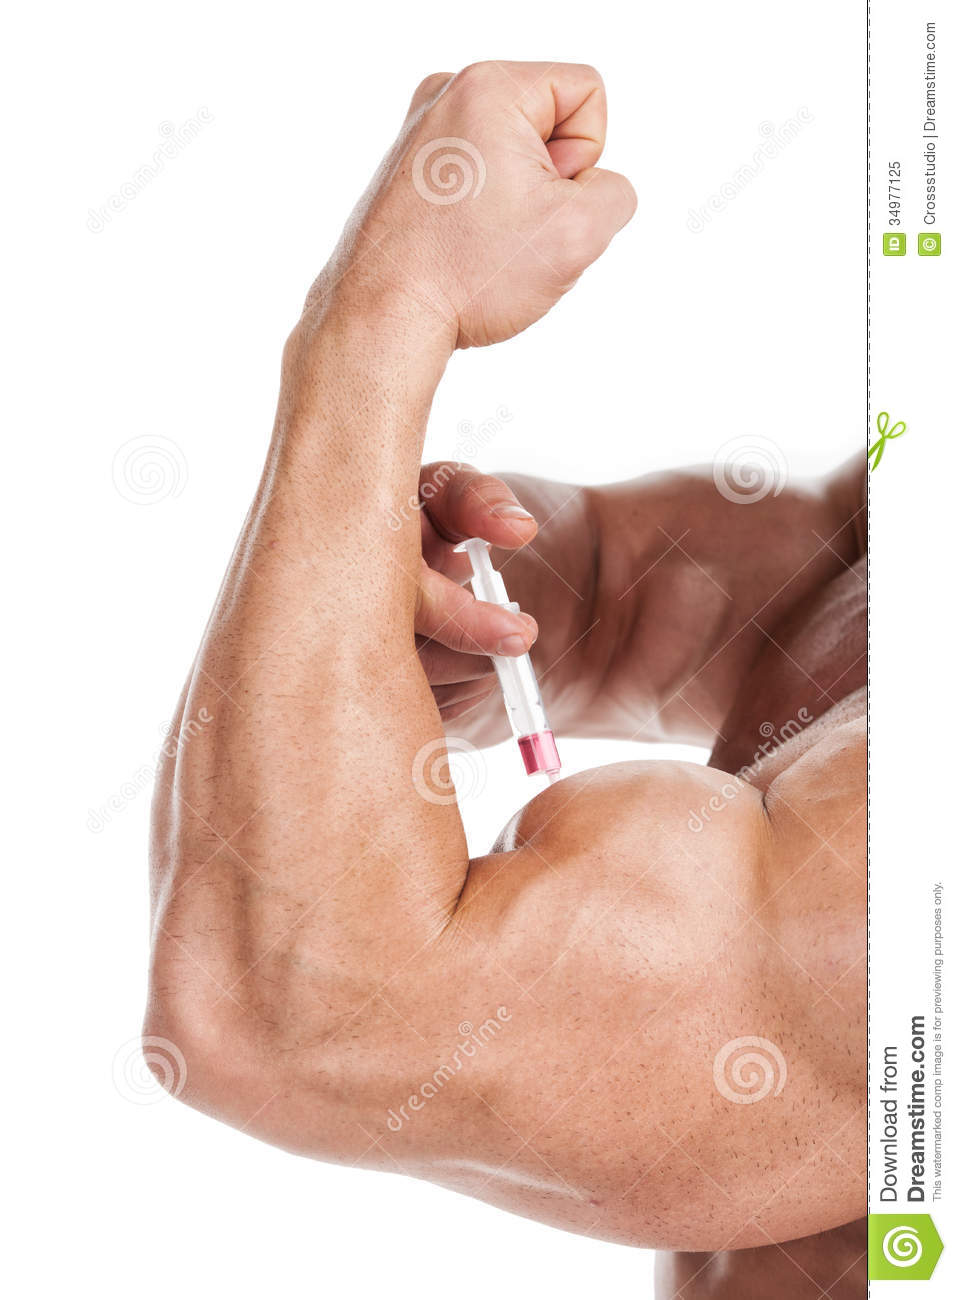 steroids use in bodybuilding